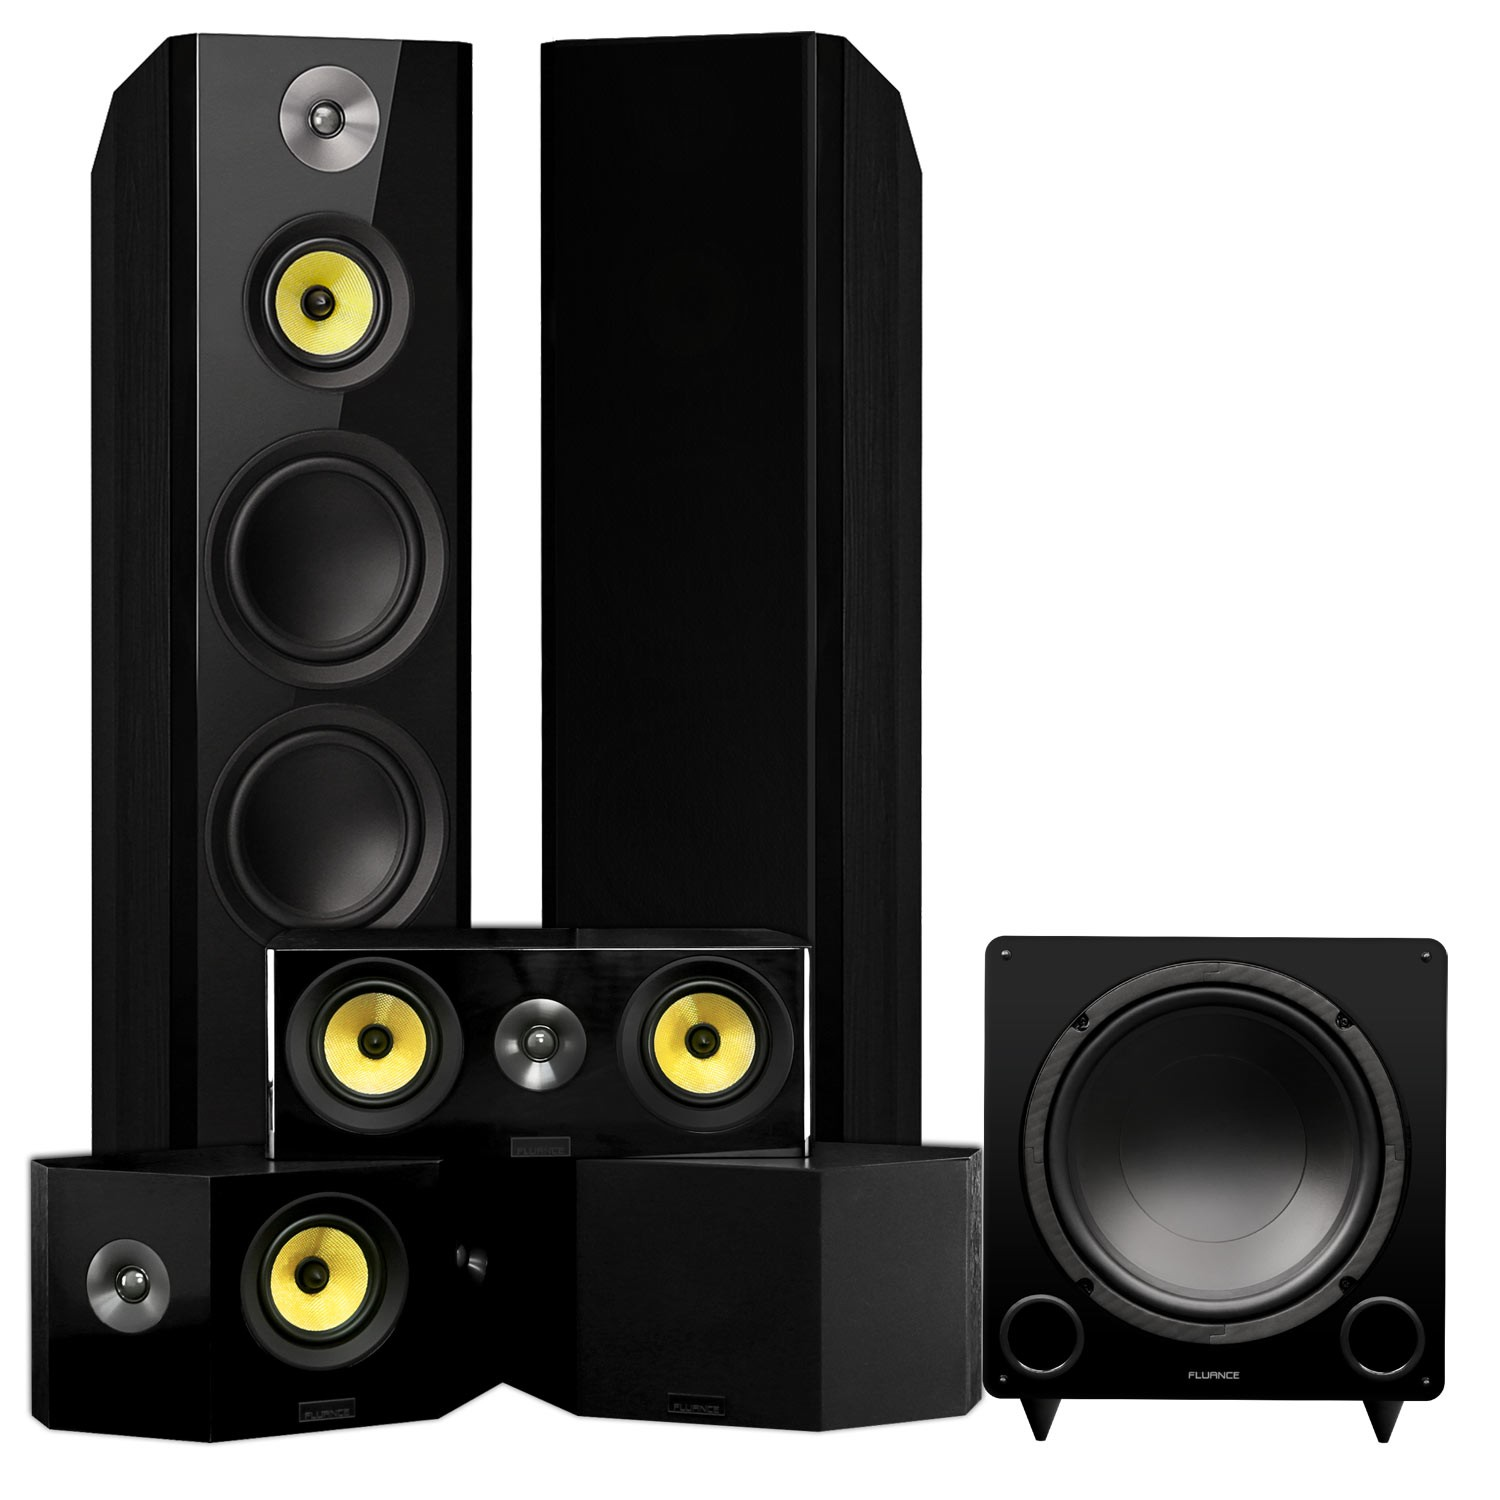 Signature Hi-Fi 9.9 Home Theater Speaker System with Bipolar Speakers